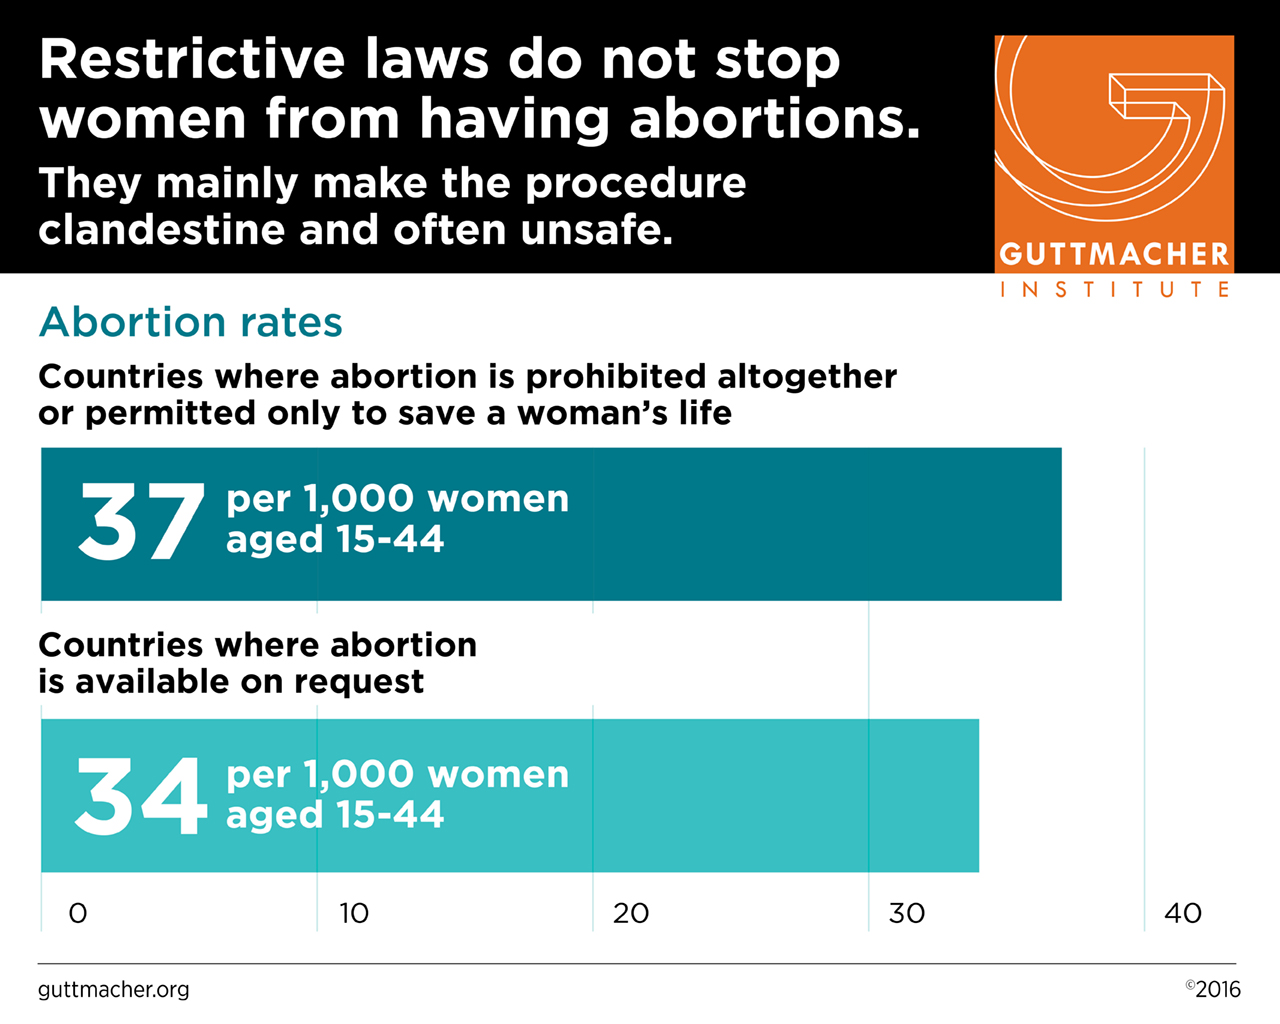 an analysis of the facts and abortion data in the united states Replacing myths with facts: sex-selective abortion laws in the united  empirical analysis of us birth data,  using united states census data from 2000,.